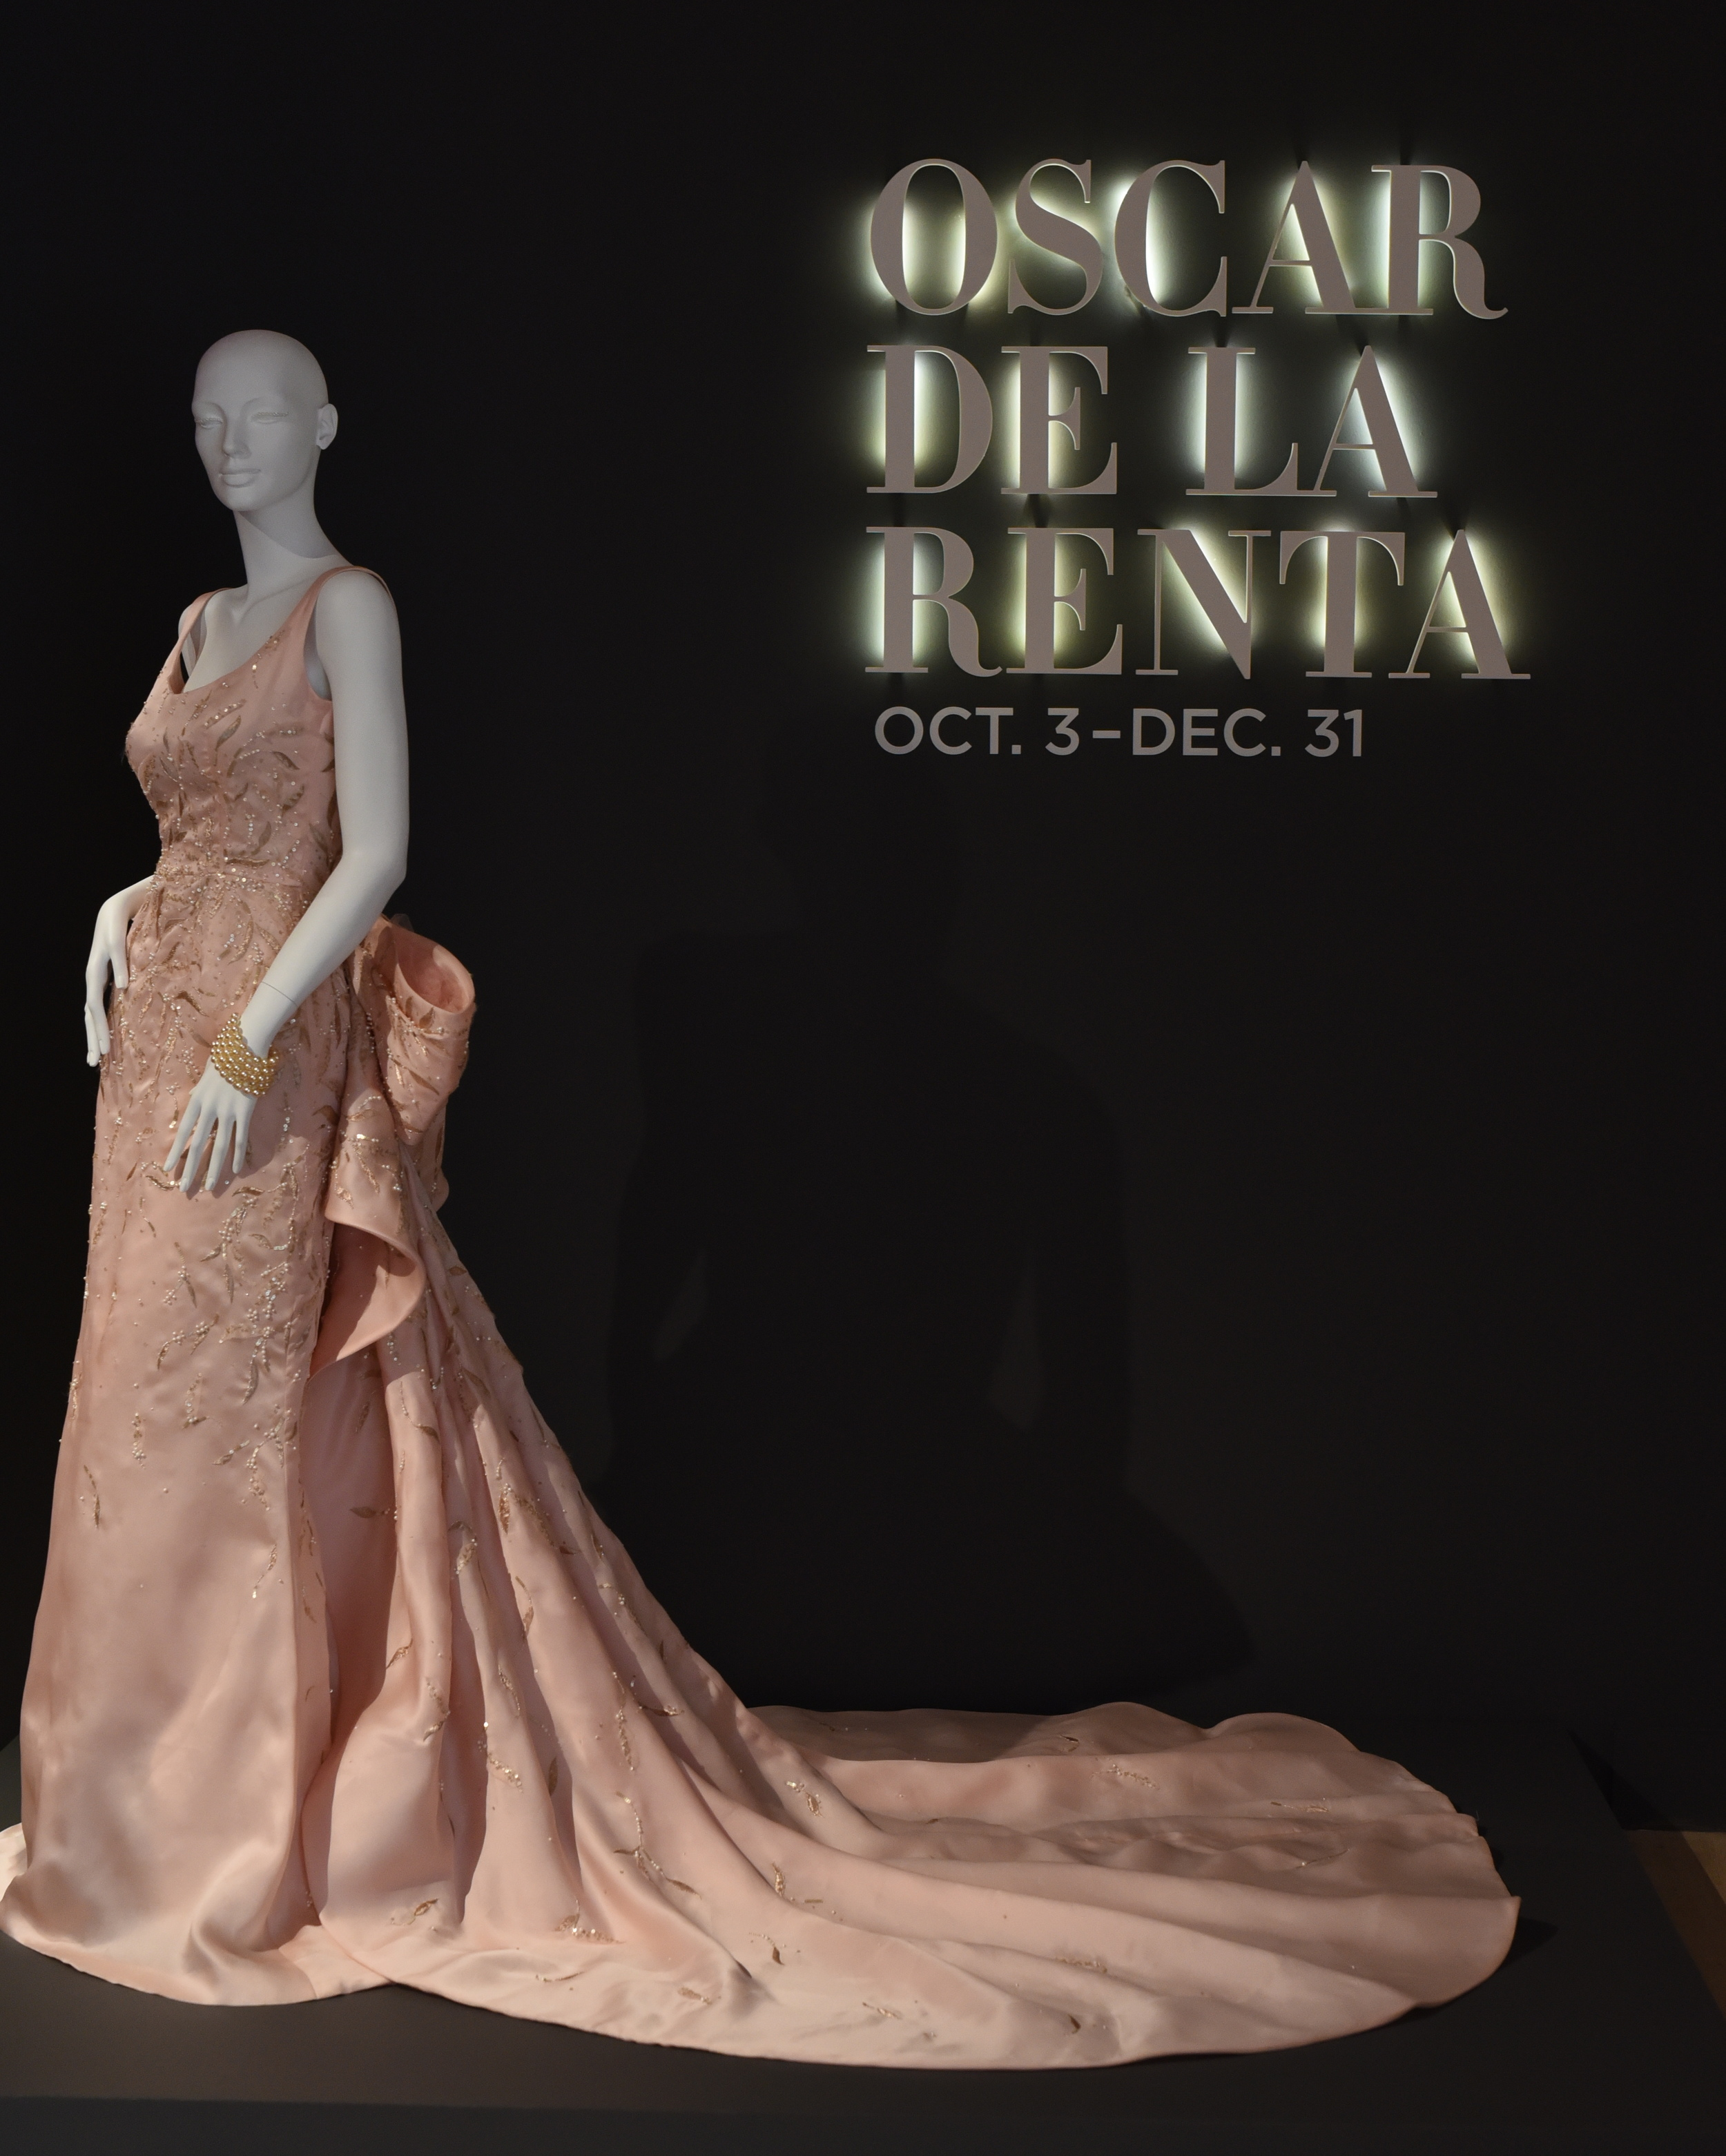 Taylor Swift wore this gown to the 2014 Met Ball. You can see her in the gown  here .